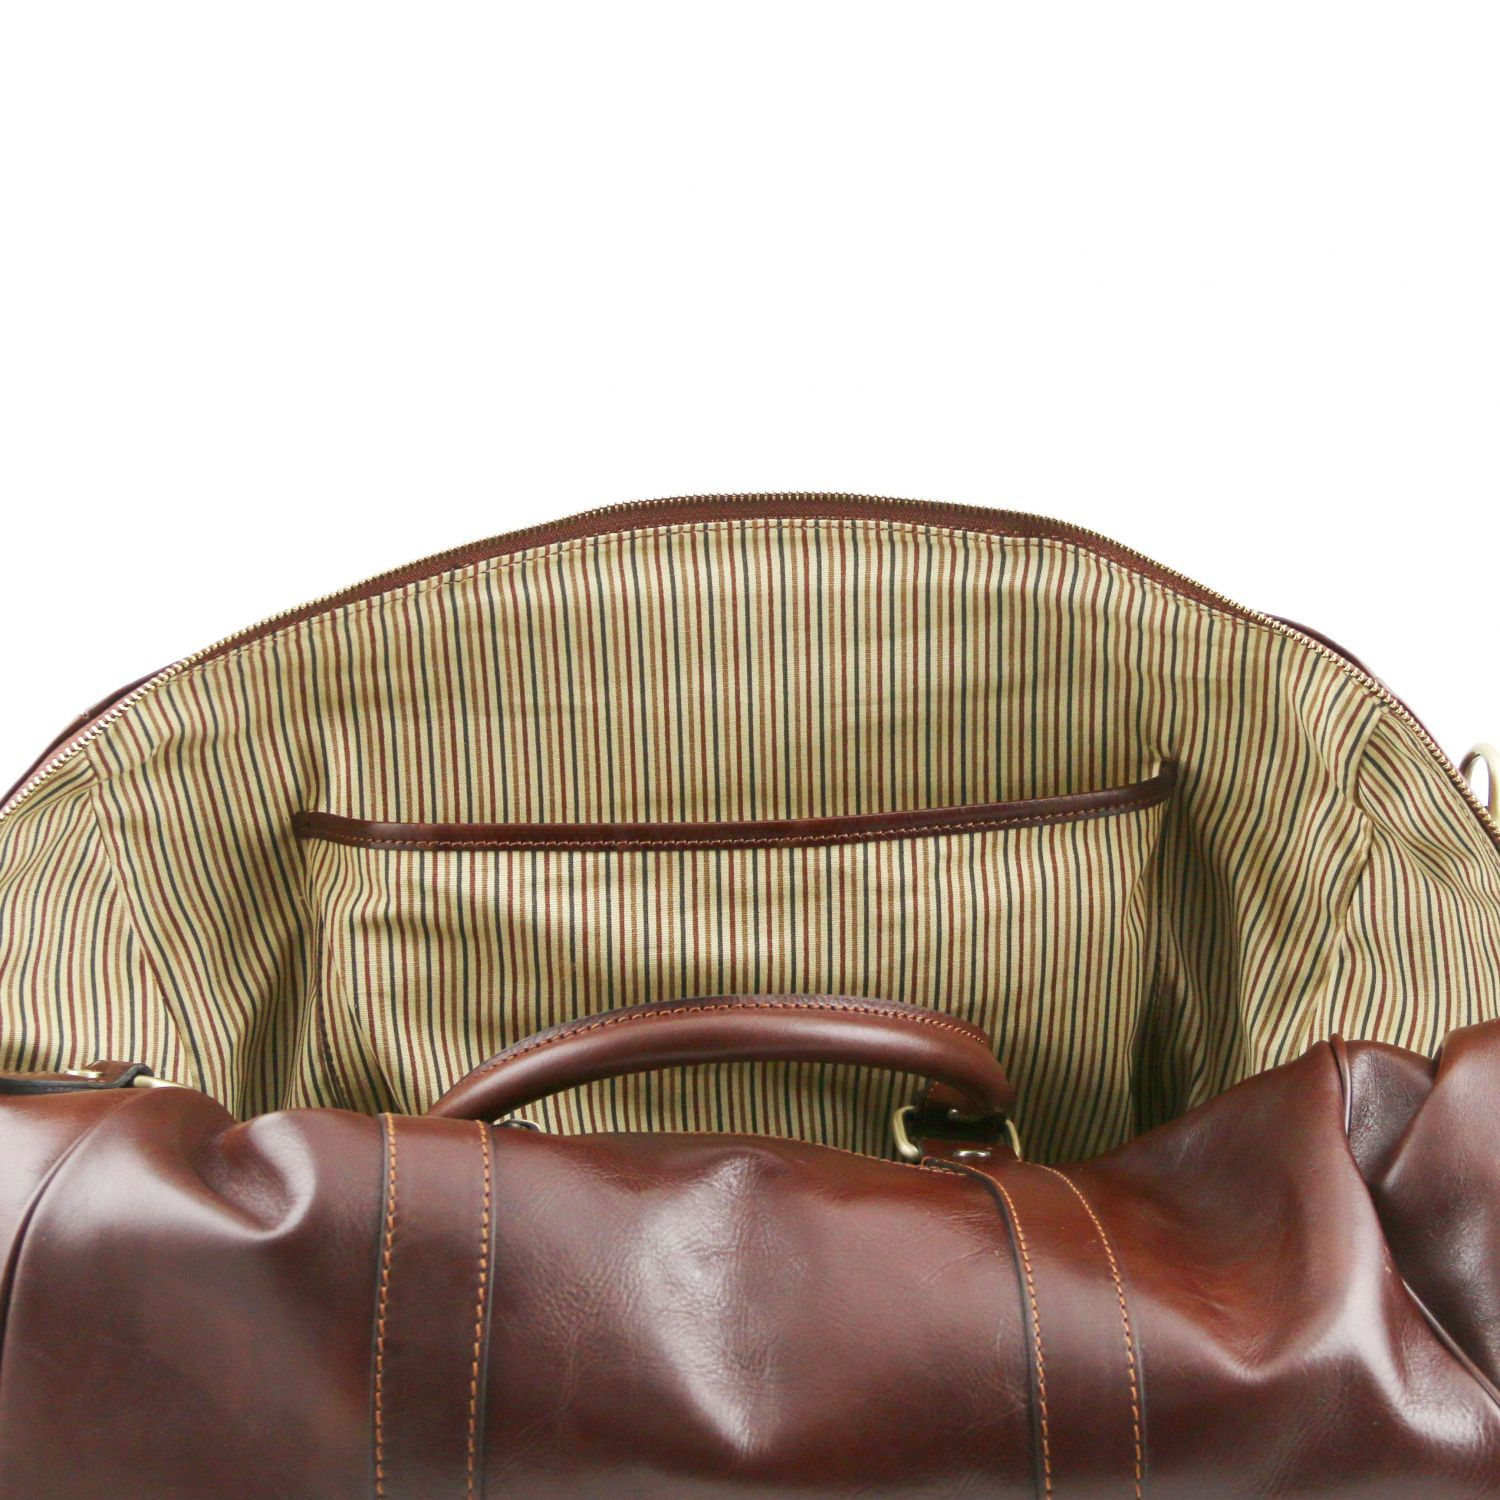 TL Voyager - Travel leather duffle bag with pocket on the back side - Small size (TL141250) - Leather Travel bags | DILUSSOBAGS